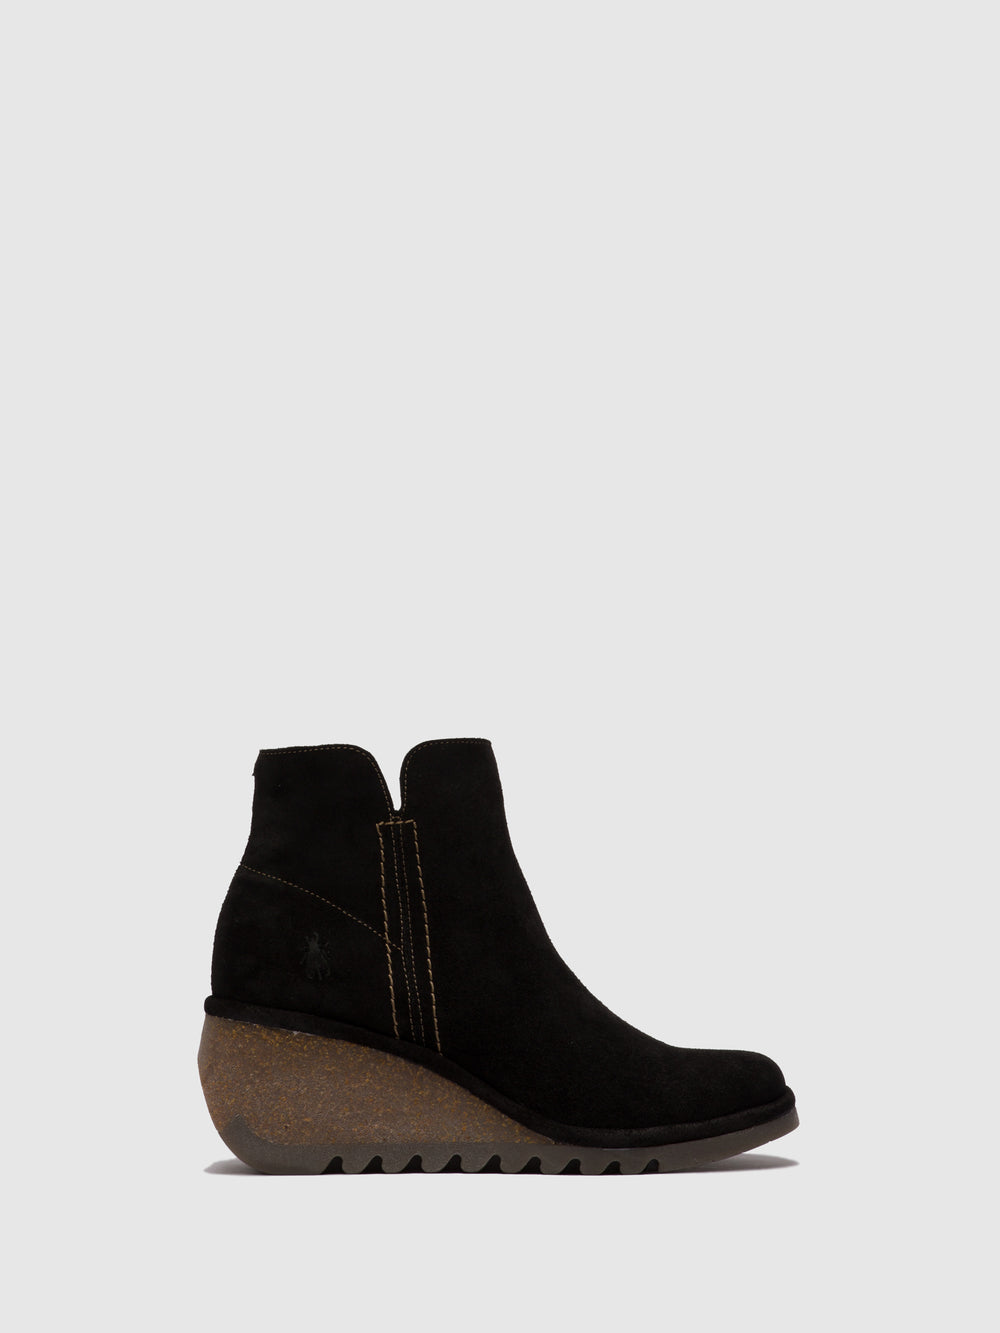 Zip Up Ankle Boots NILO256FLY OILSUEDE BLACK